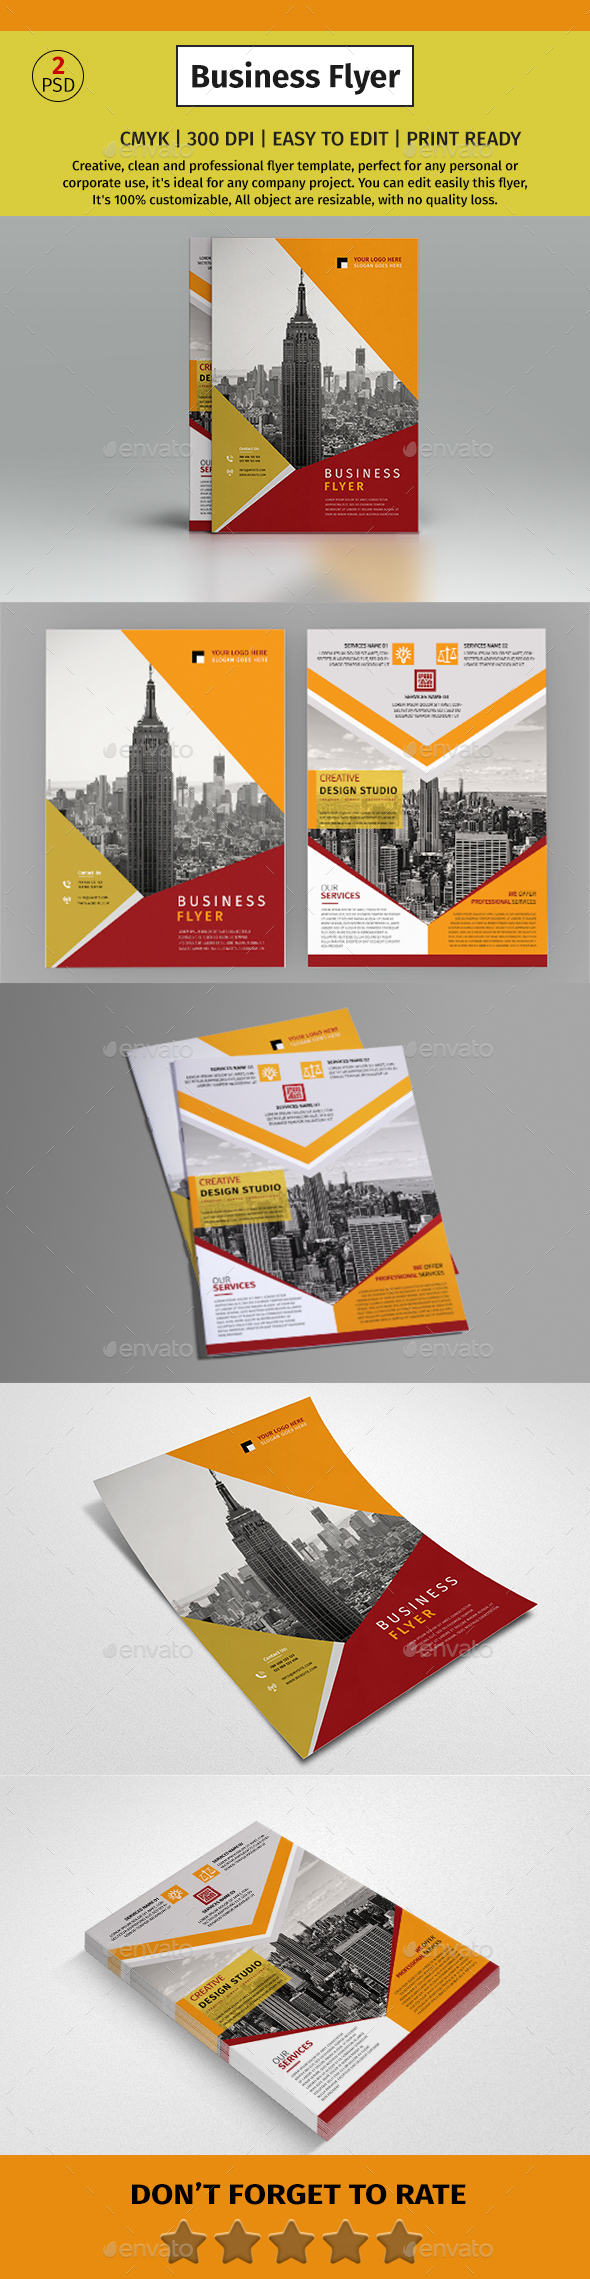 A4 Corporate Business Fyer #82 - Corporate Flyers